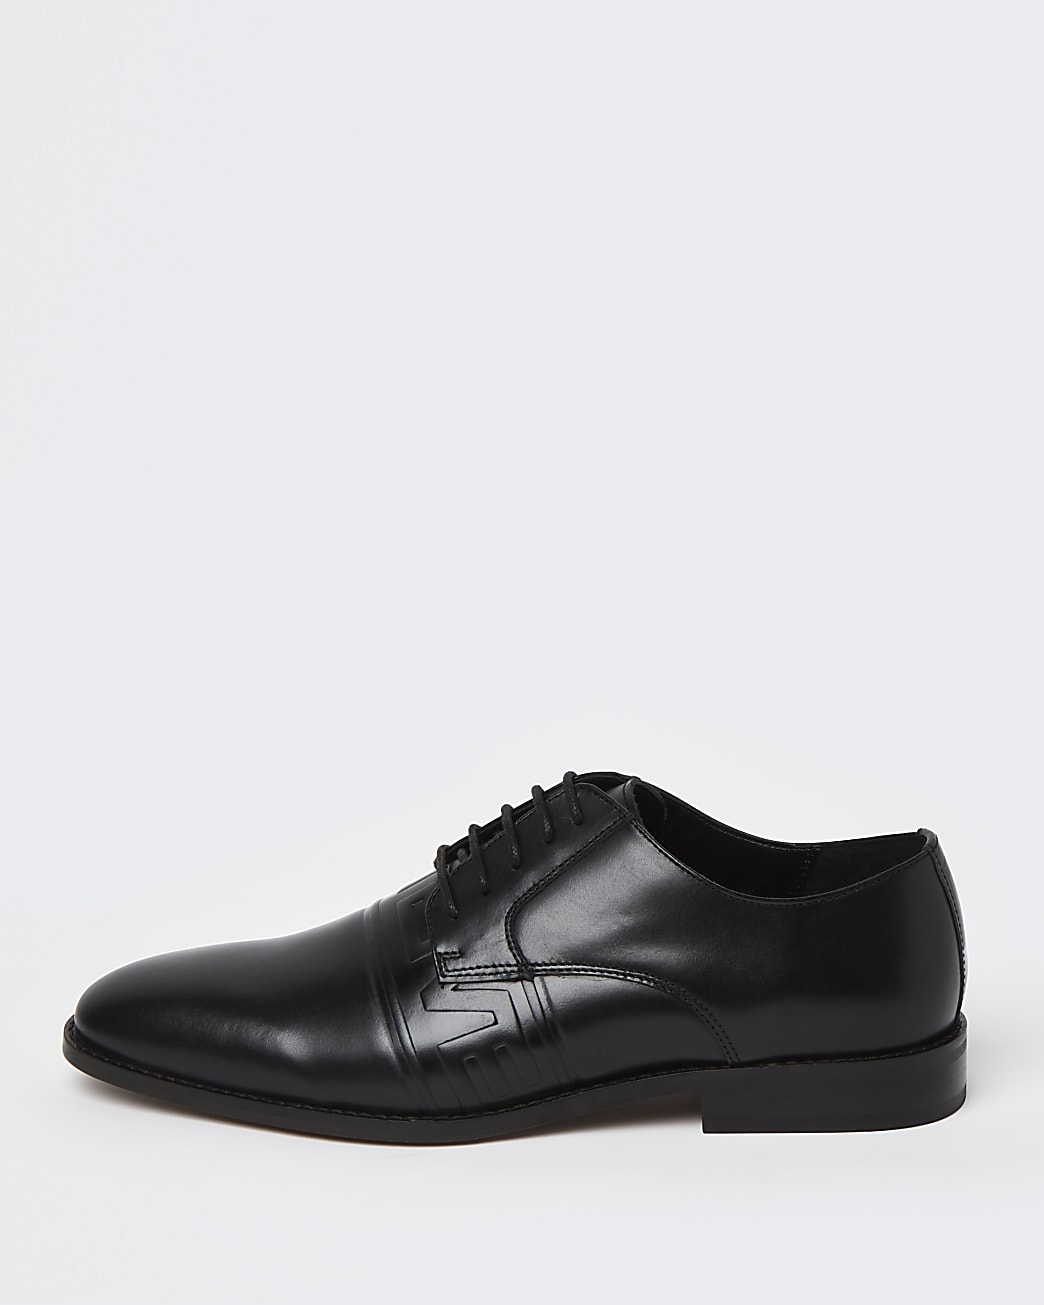 Black embossed lace up derby shoes